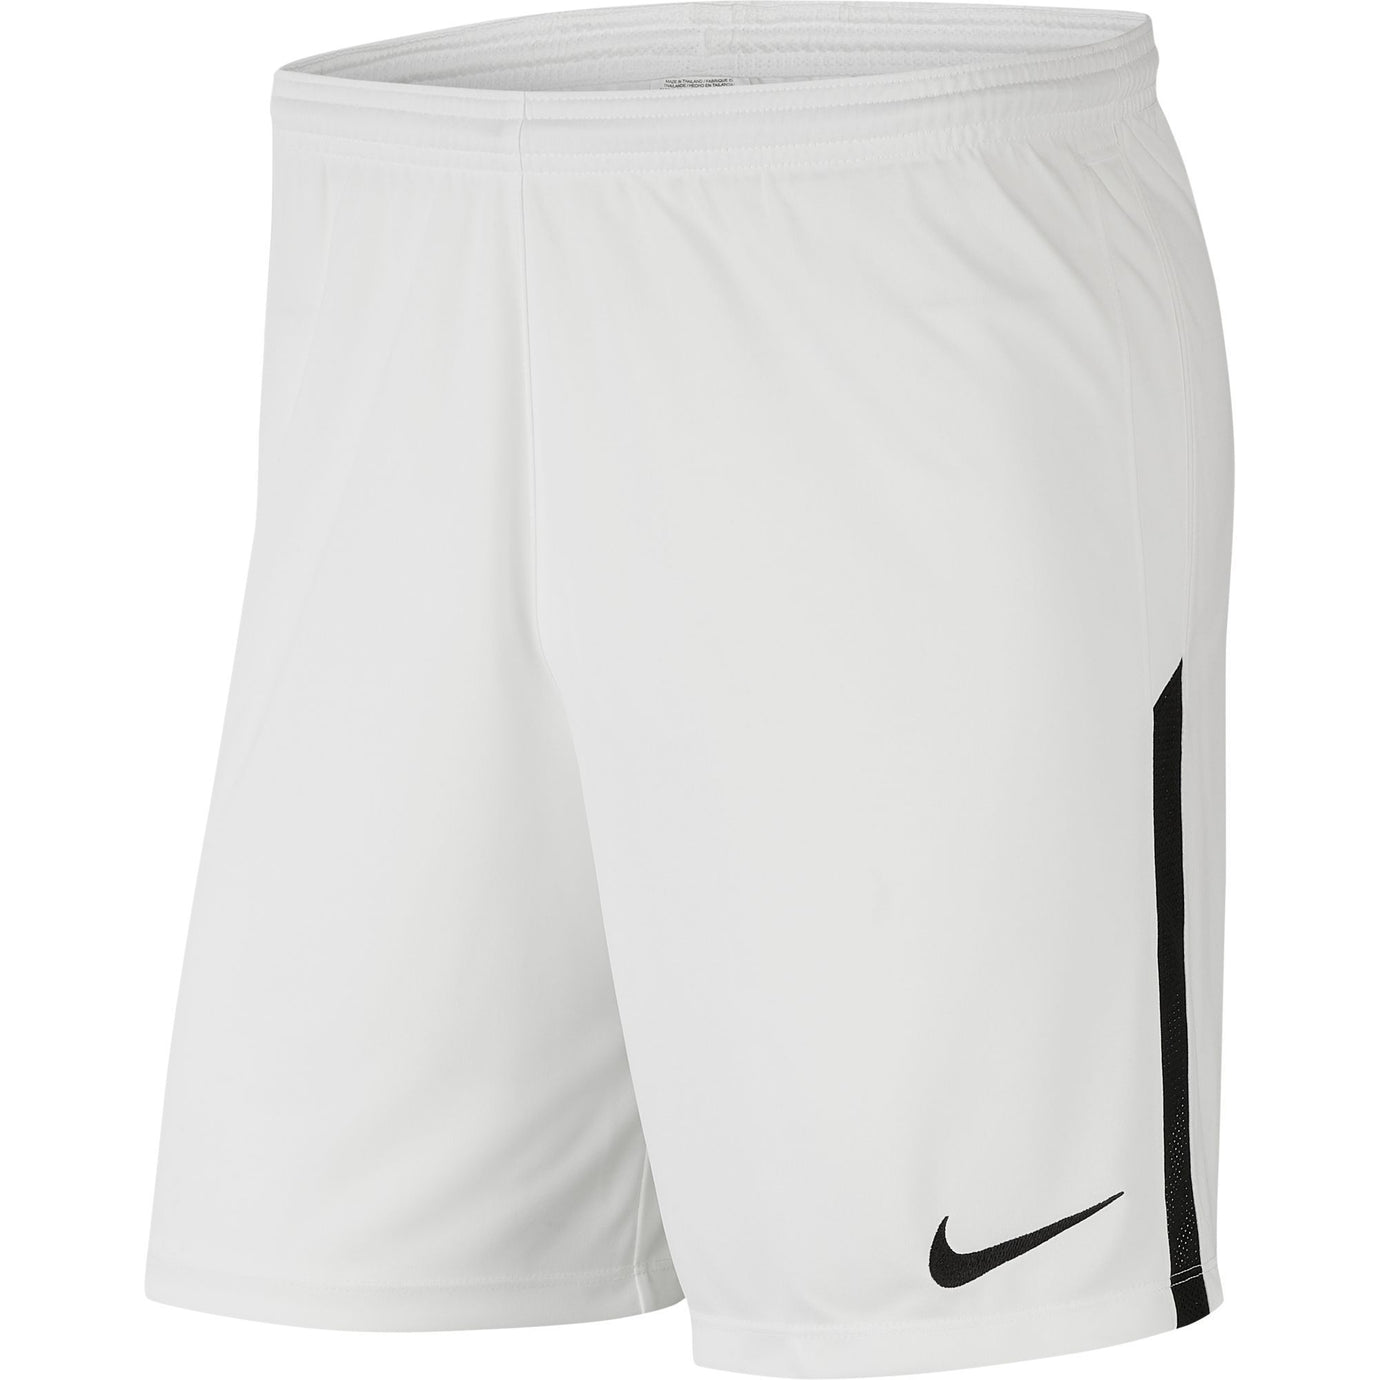 NIKE LEAGUE KNIT II SHORT WHITE/BLACK